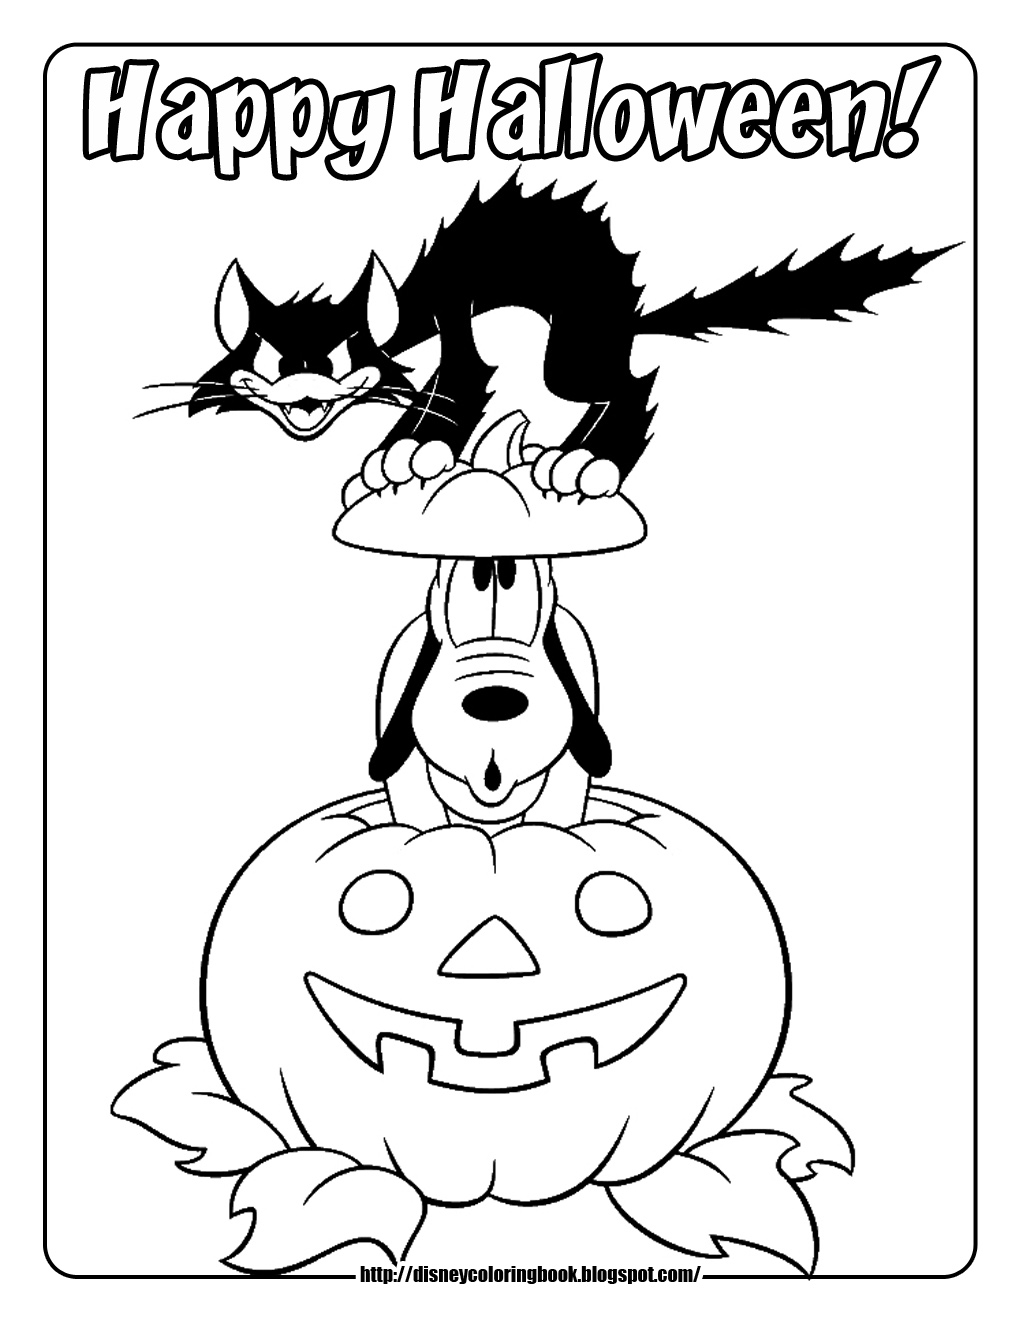 46 Astonishing Disney Halloween Coloring Pages Picture Ideas ... | 1320x1020